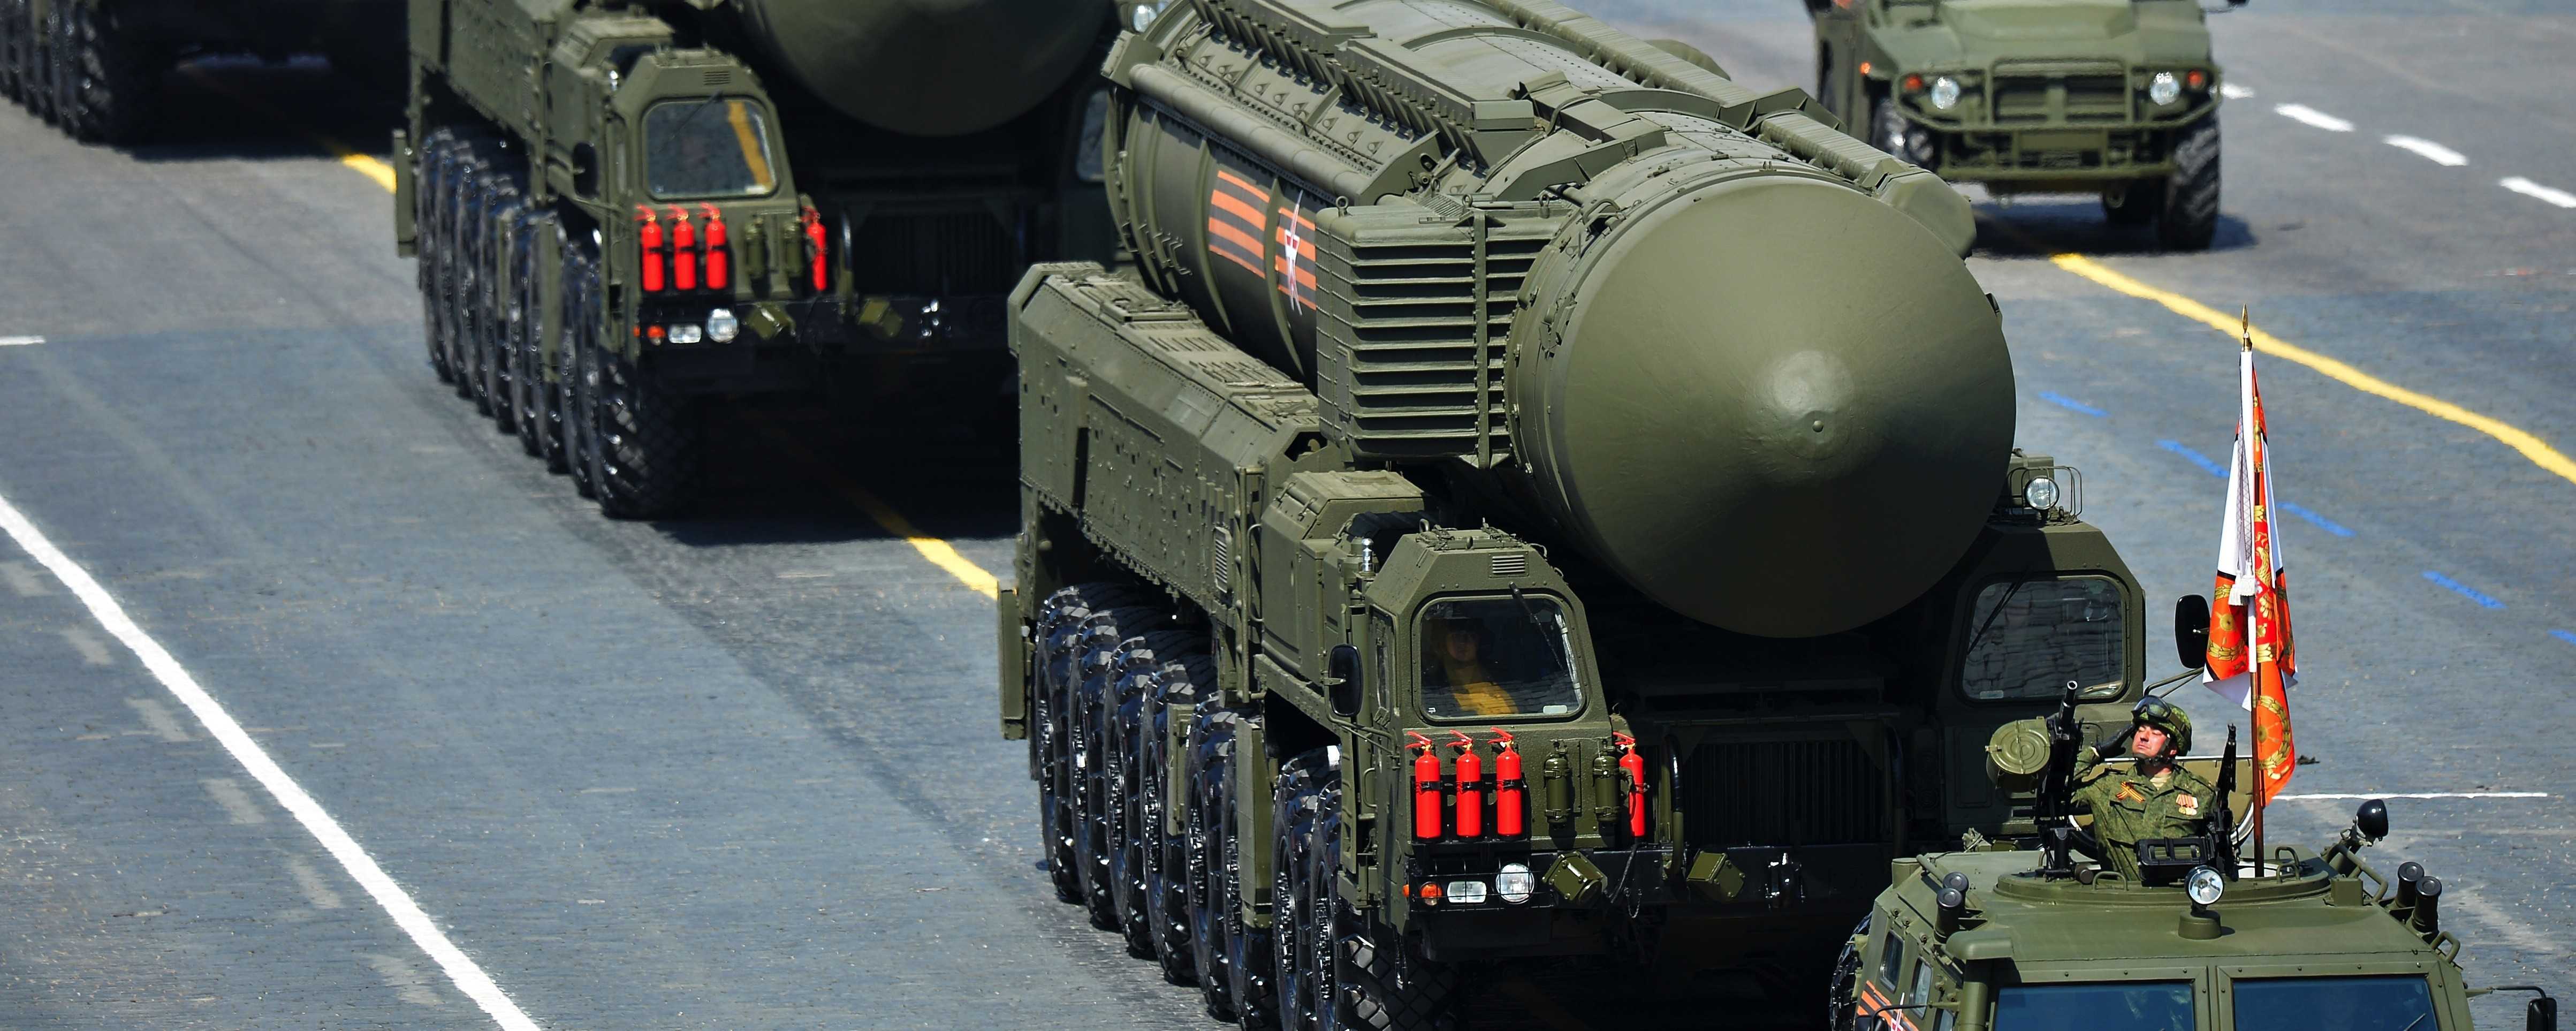 Russia Is Getting New Nuclear Missiles — But It's Probably Not the End of the World